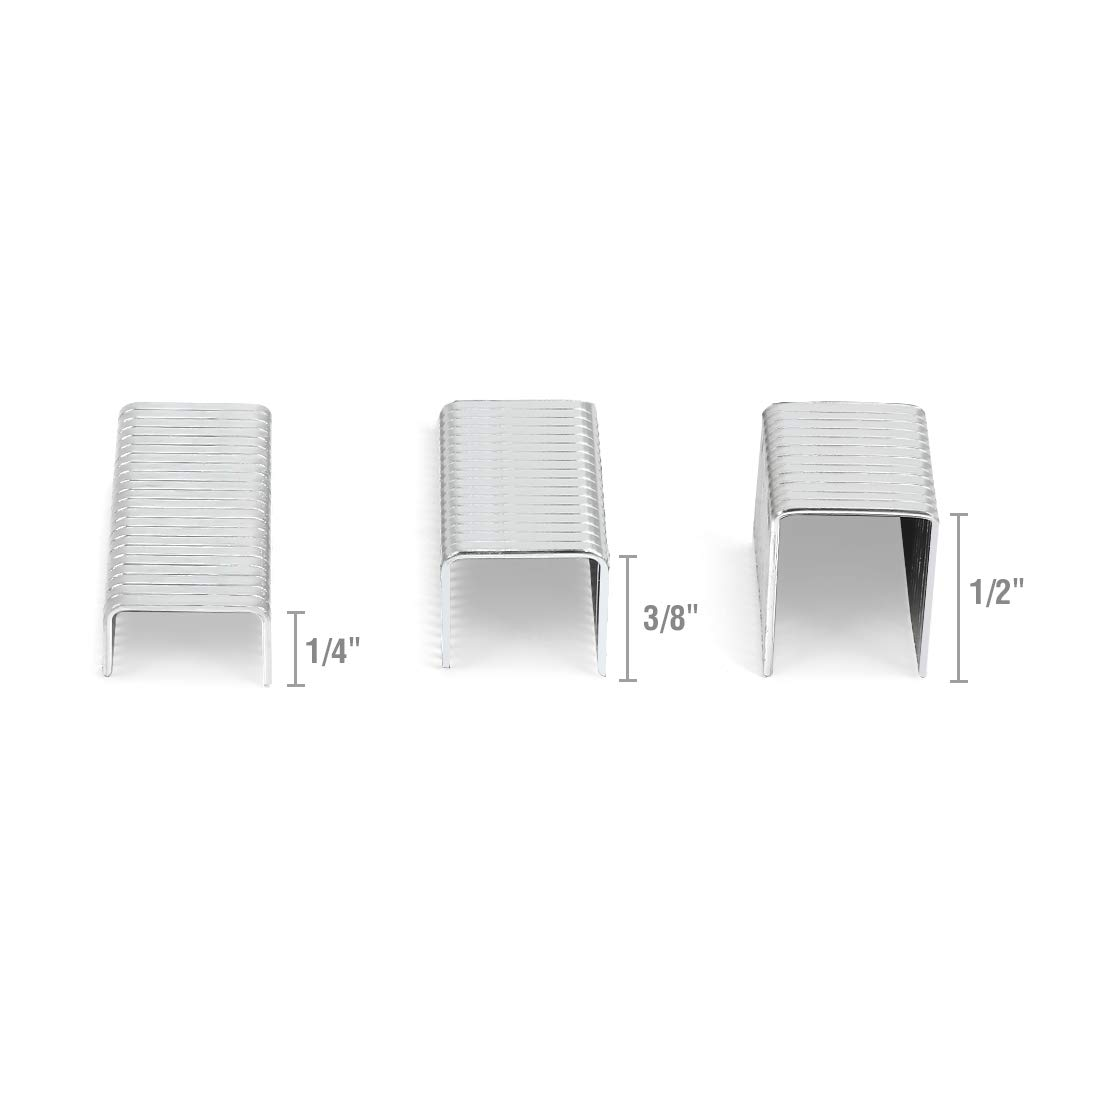 ARROW T50 Staples 50MP, 3-Pack by ARROW (Image #4)